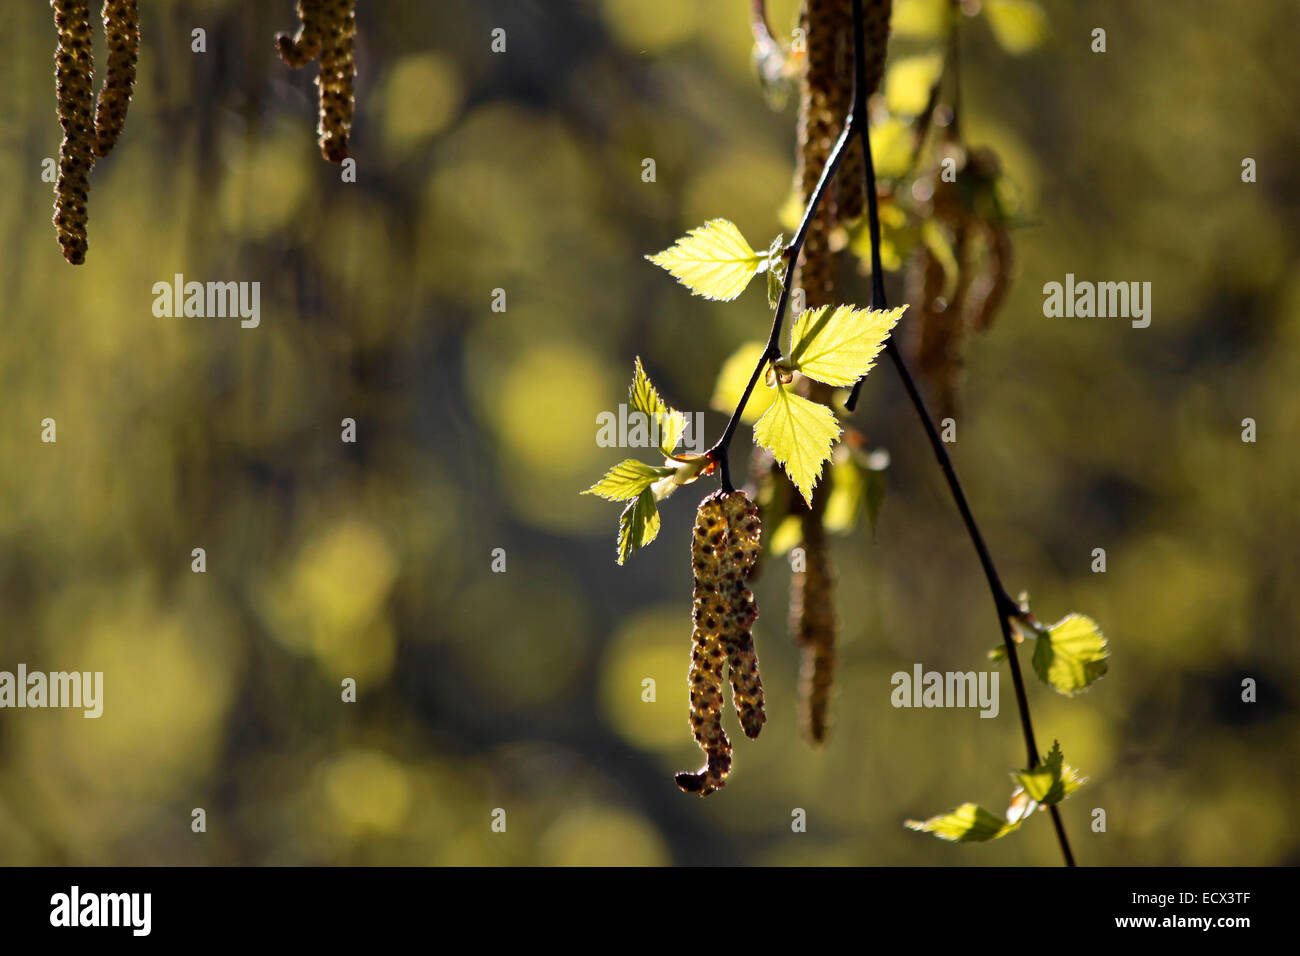 Young birch leaves in the Taunus mountains near Engenhahn, Hesse, Germany - Stock Image